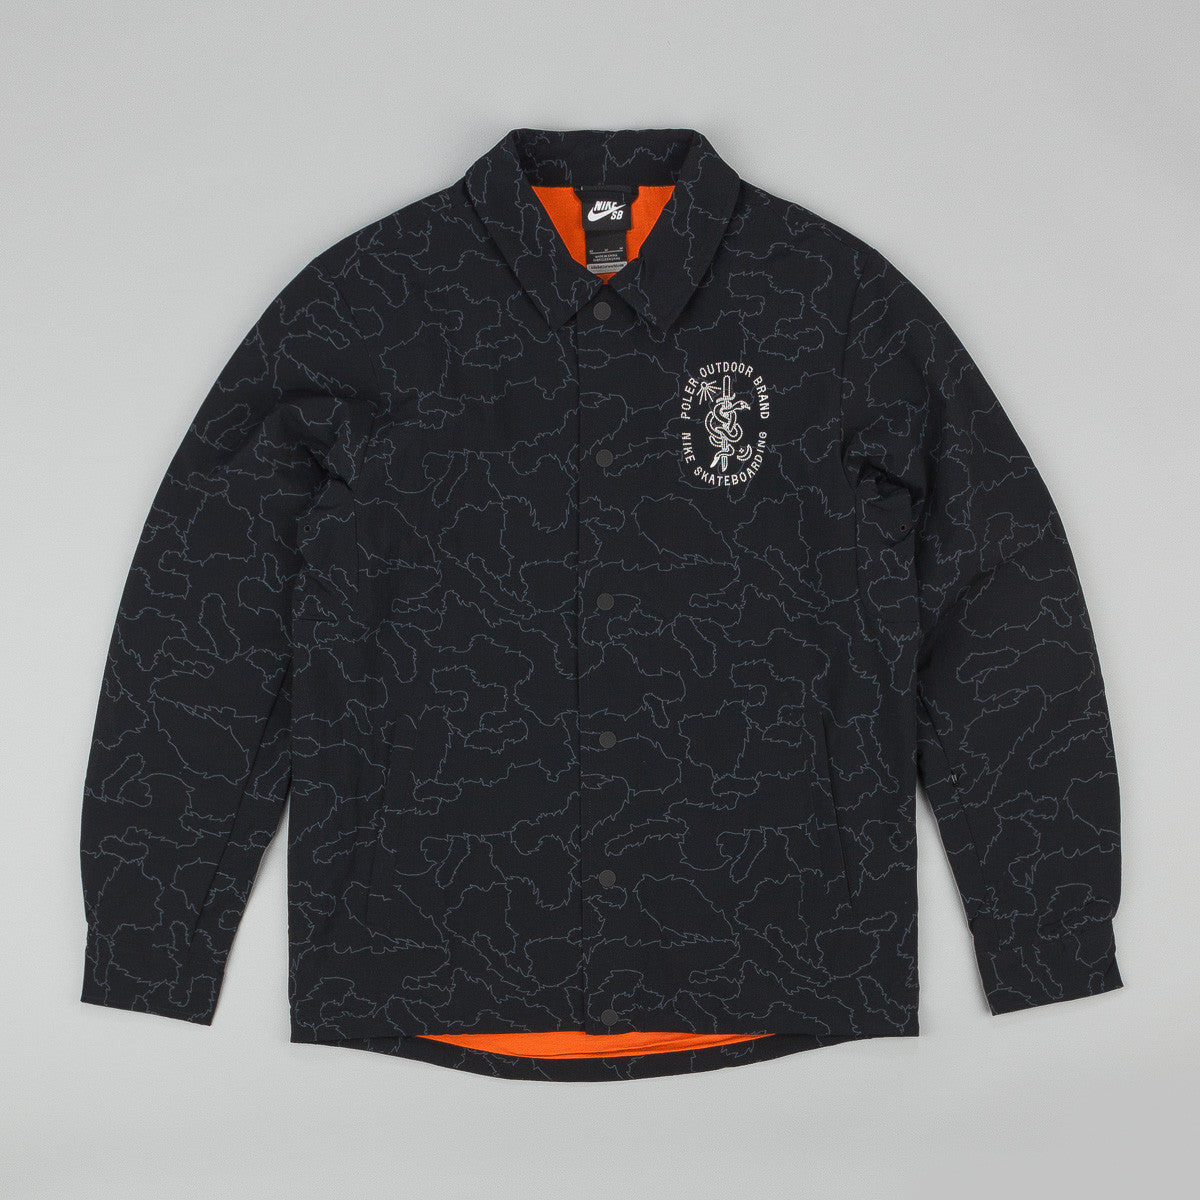 Nike SB x Poler Coach Jacket - Black / Urban Orange / Whitees